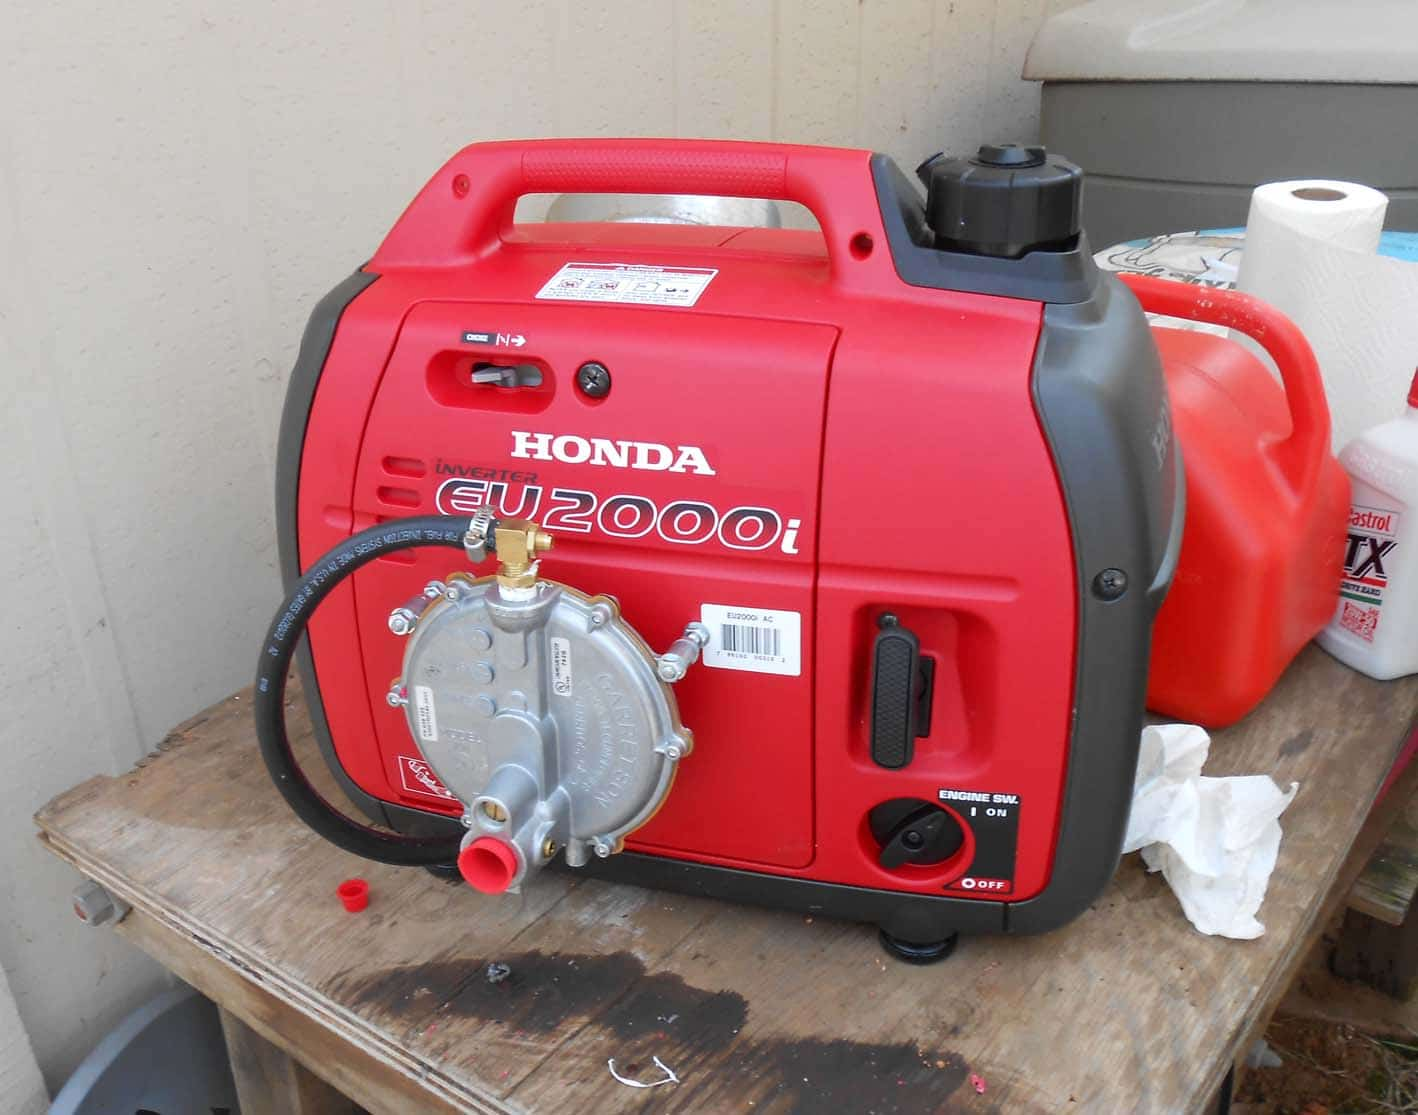 Propane Powered Motors From Gasoline An Easy Conversion